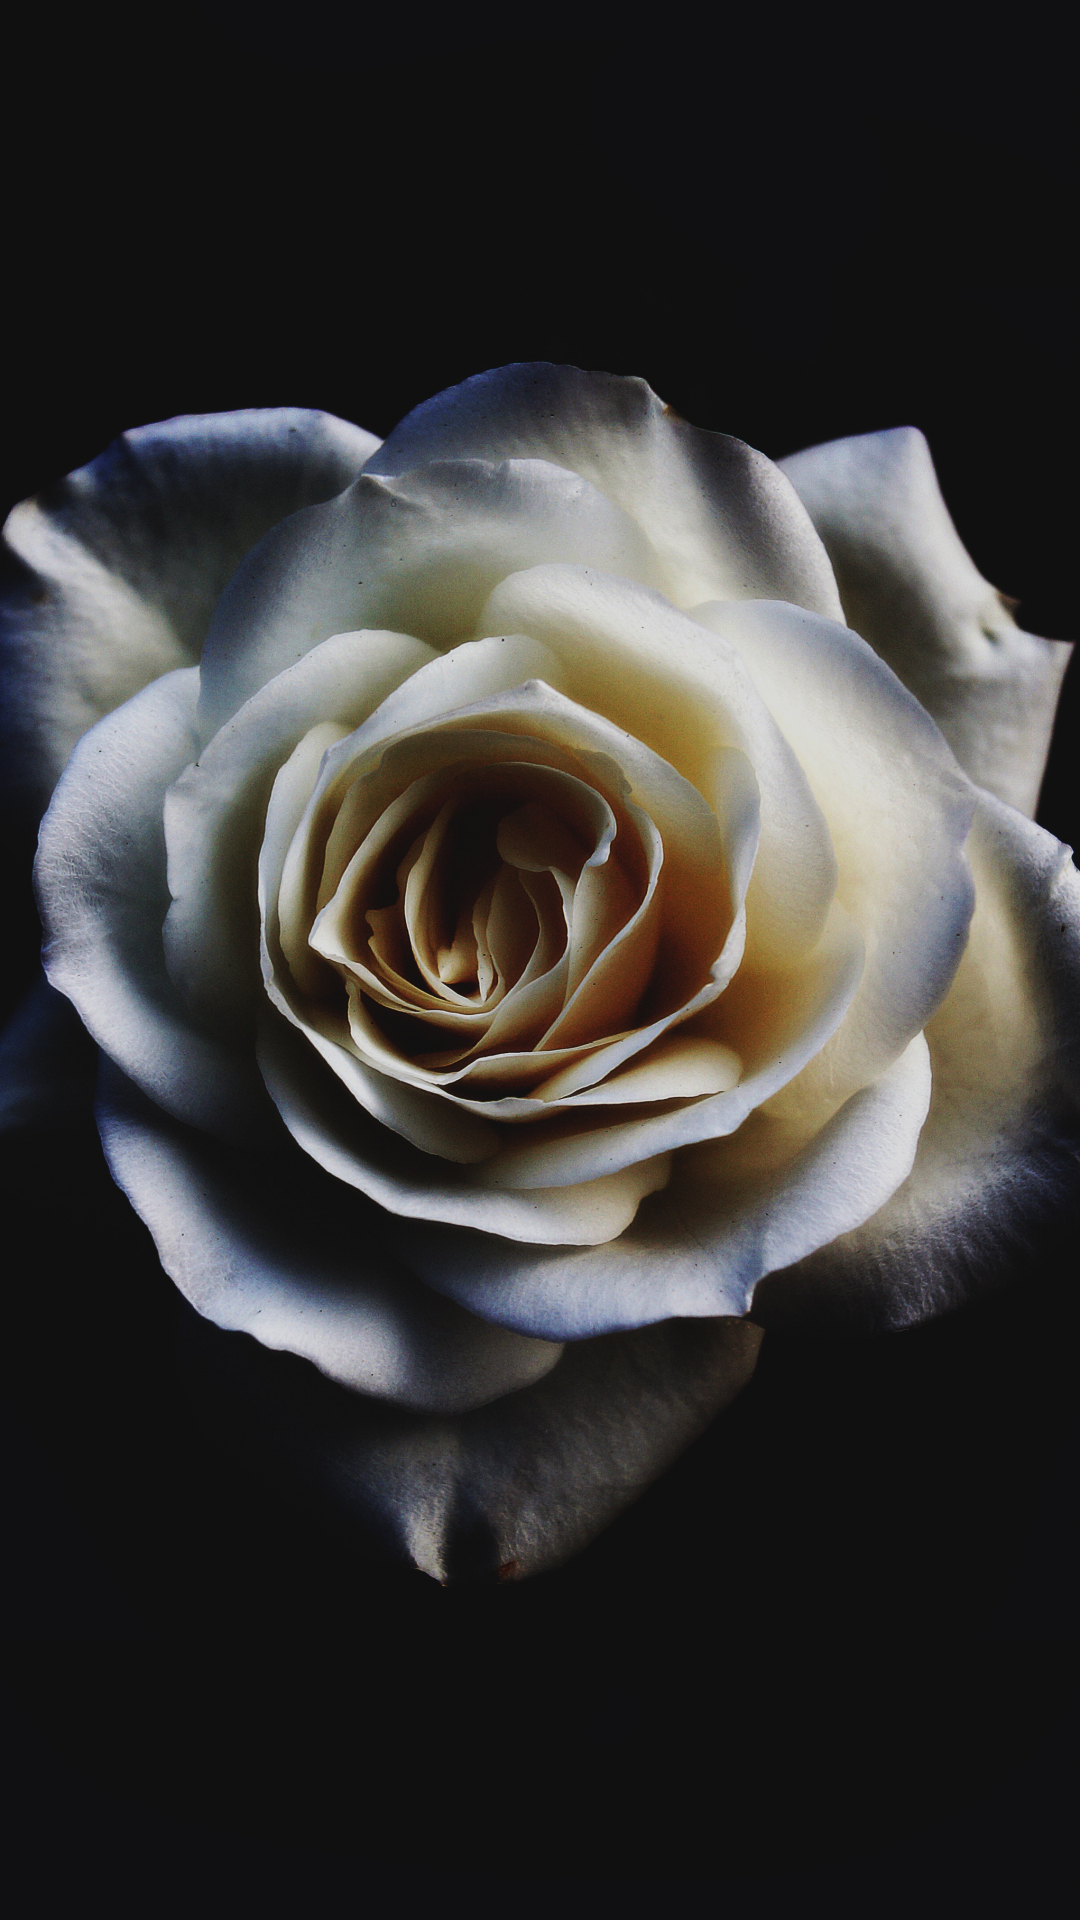 Flower, Rose, White iPhone Wallpaper